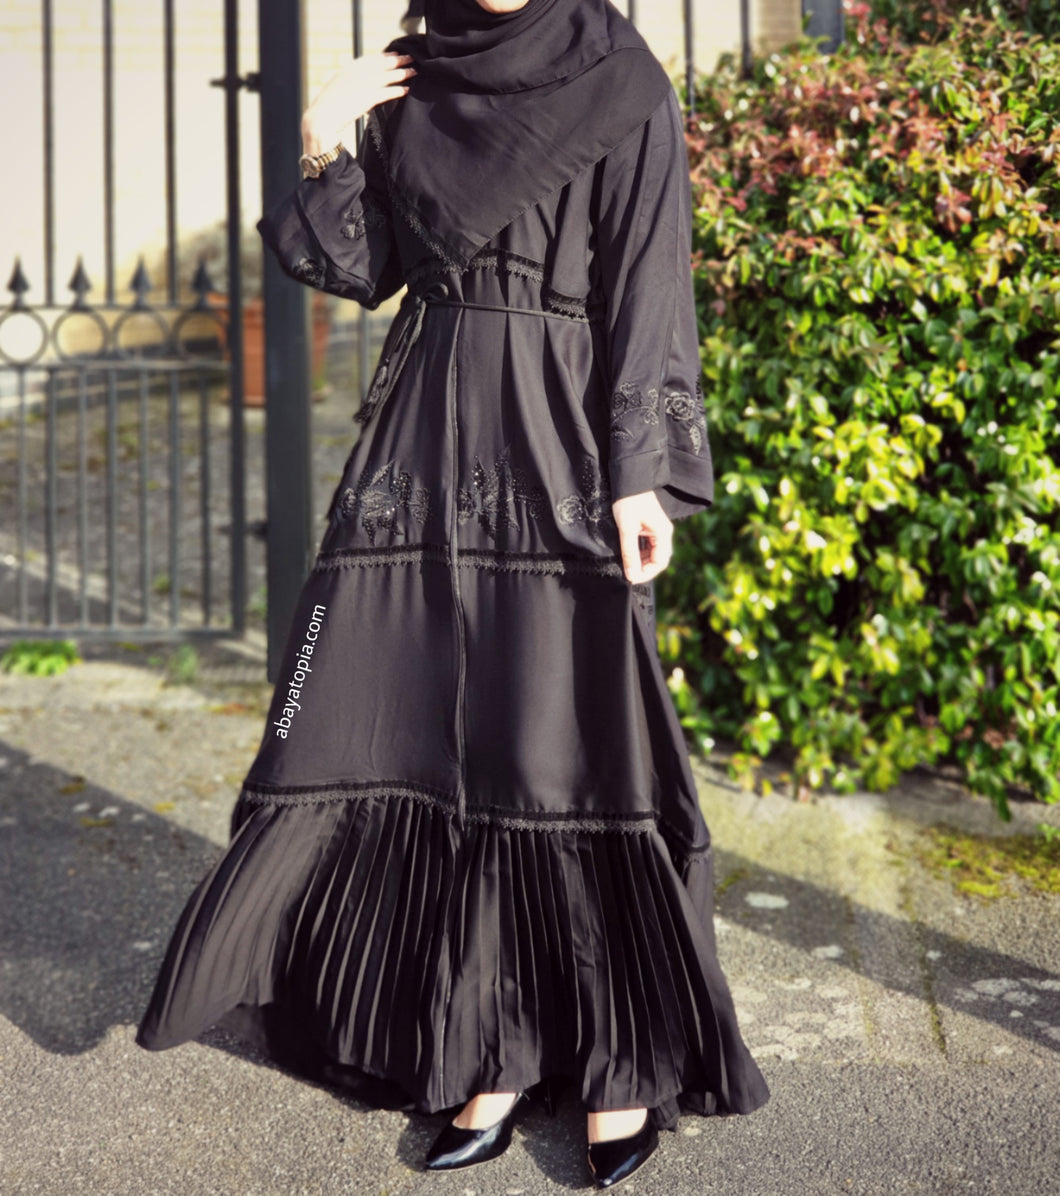 Raania Black-on-Black Embroidered Zip & Pleated Abaya - Full Set